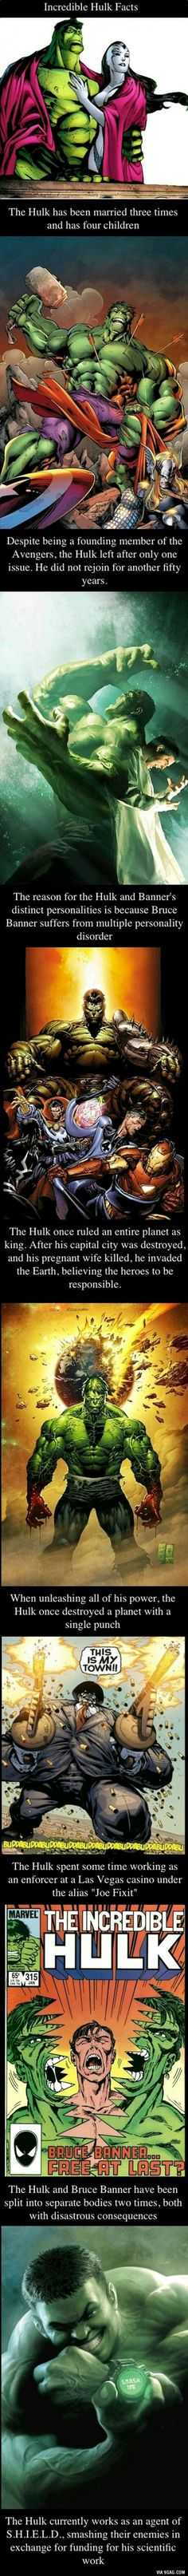 Hulk facts.